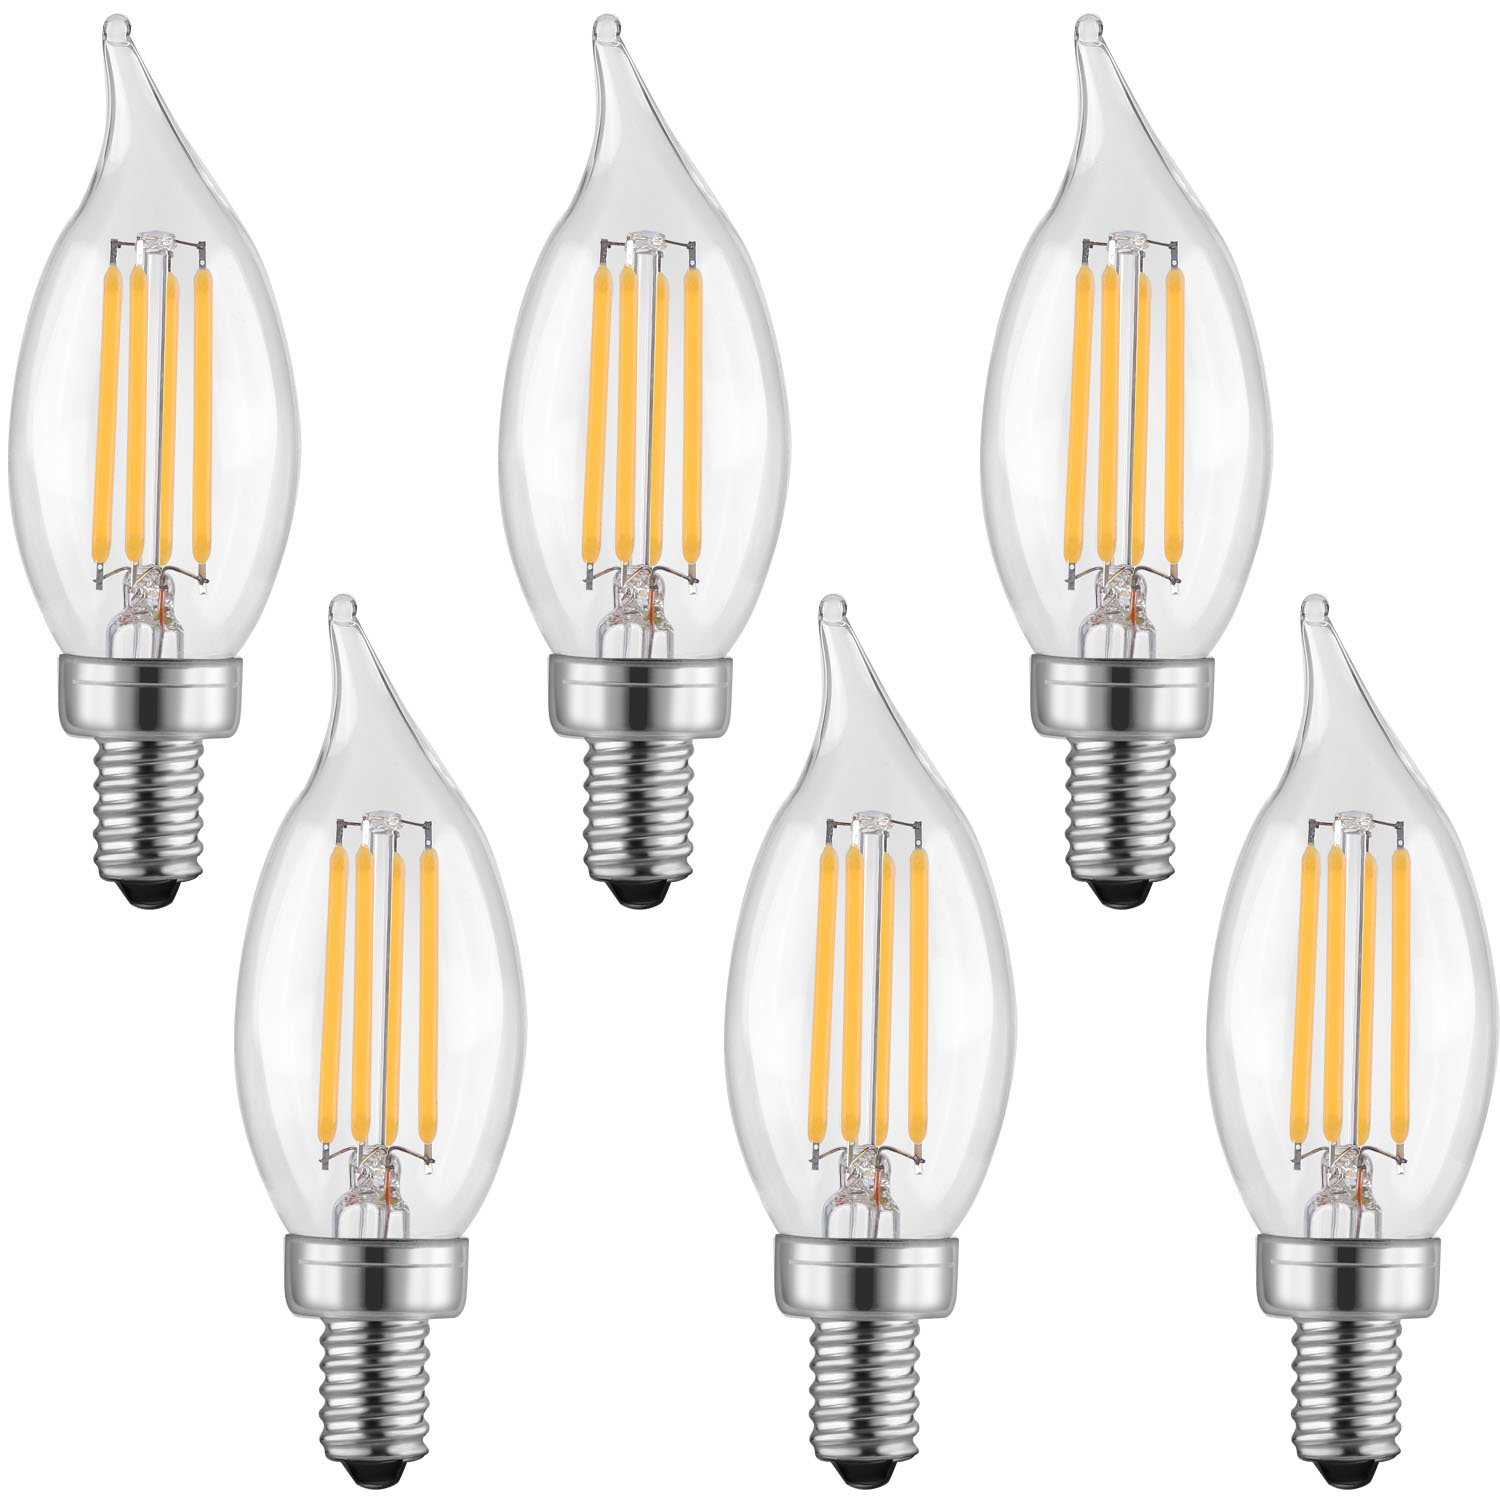 Candelabra Led Bulb: LETO CA11 4W Candelabra LED Bulbs Dimmable ,UL Listed-40W